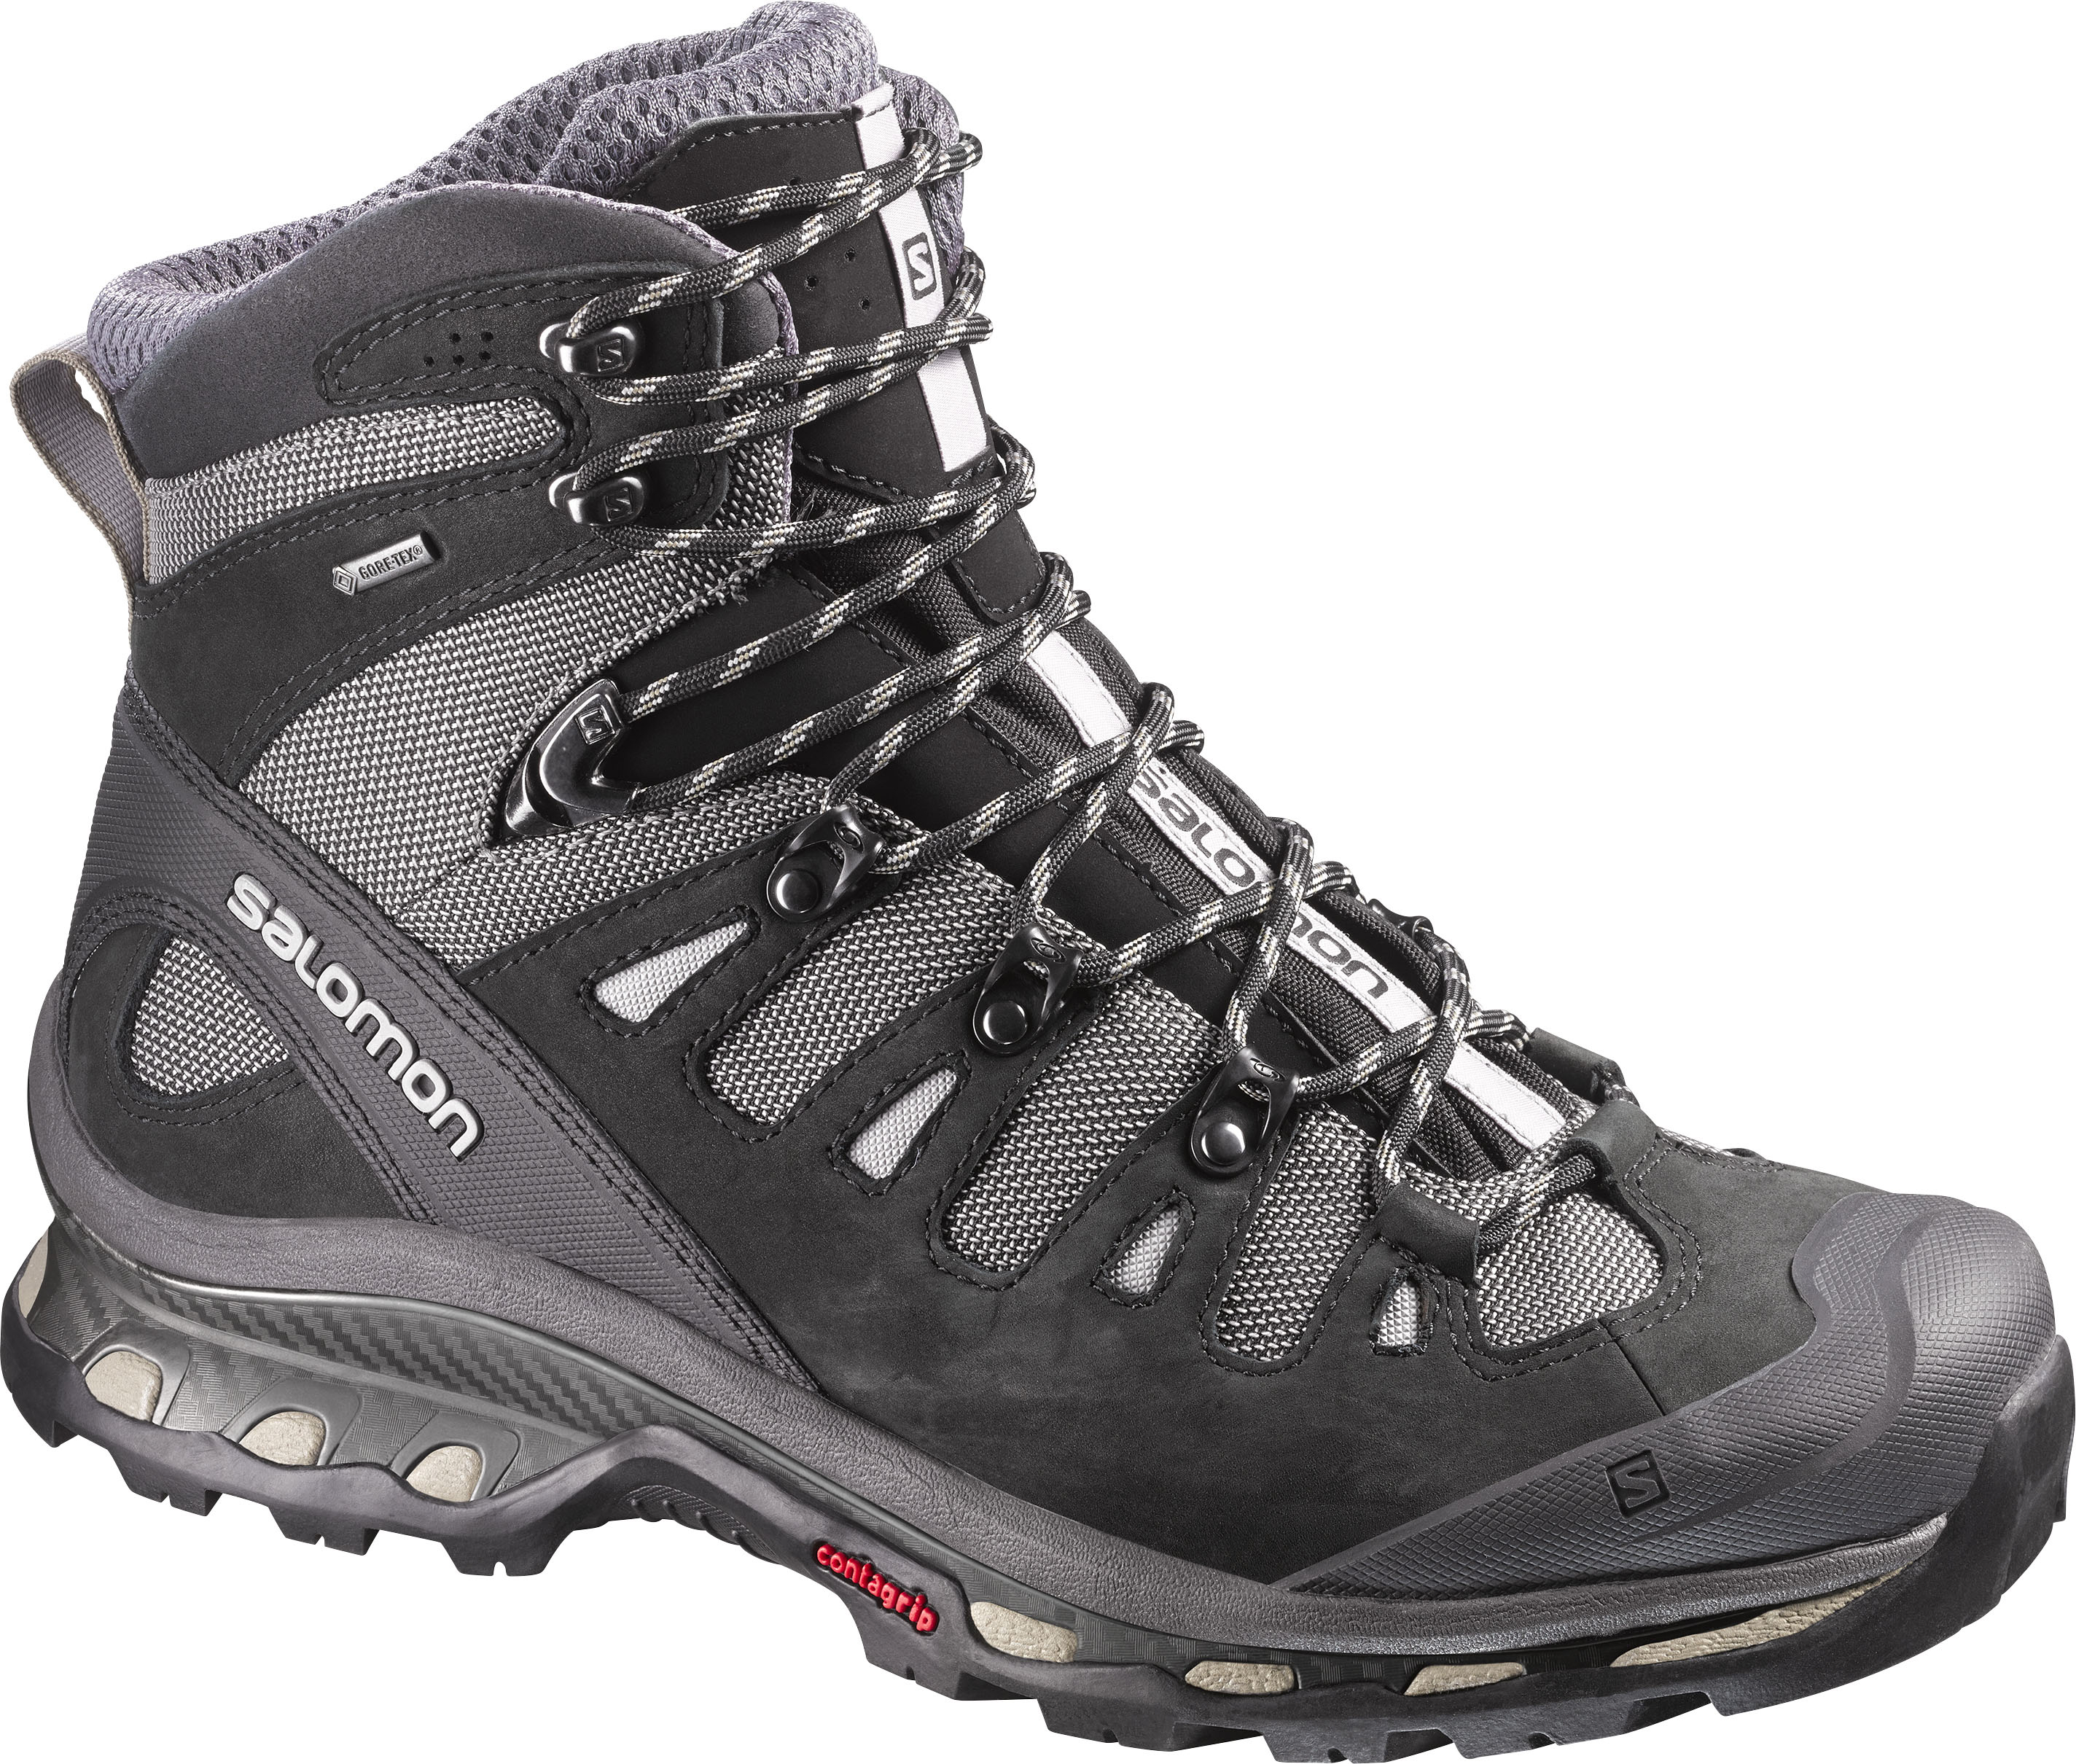 boots mid gore skyline comfortable most hiking w side tex comforter foo